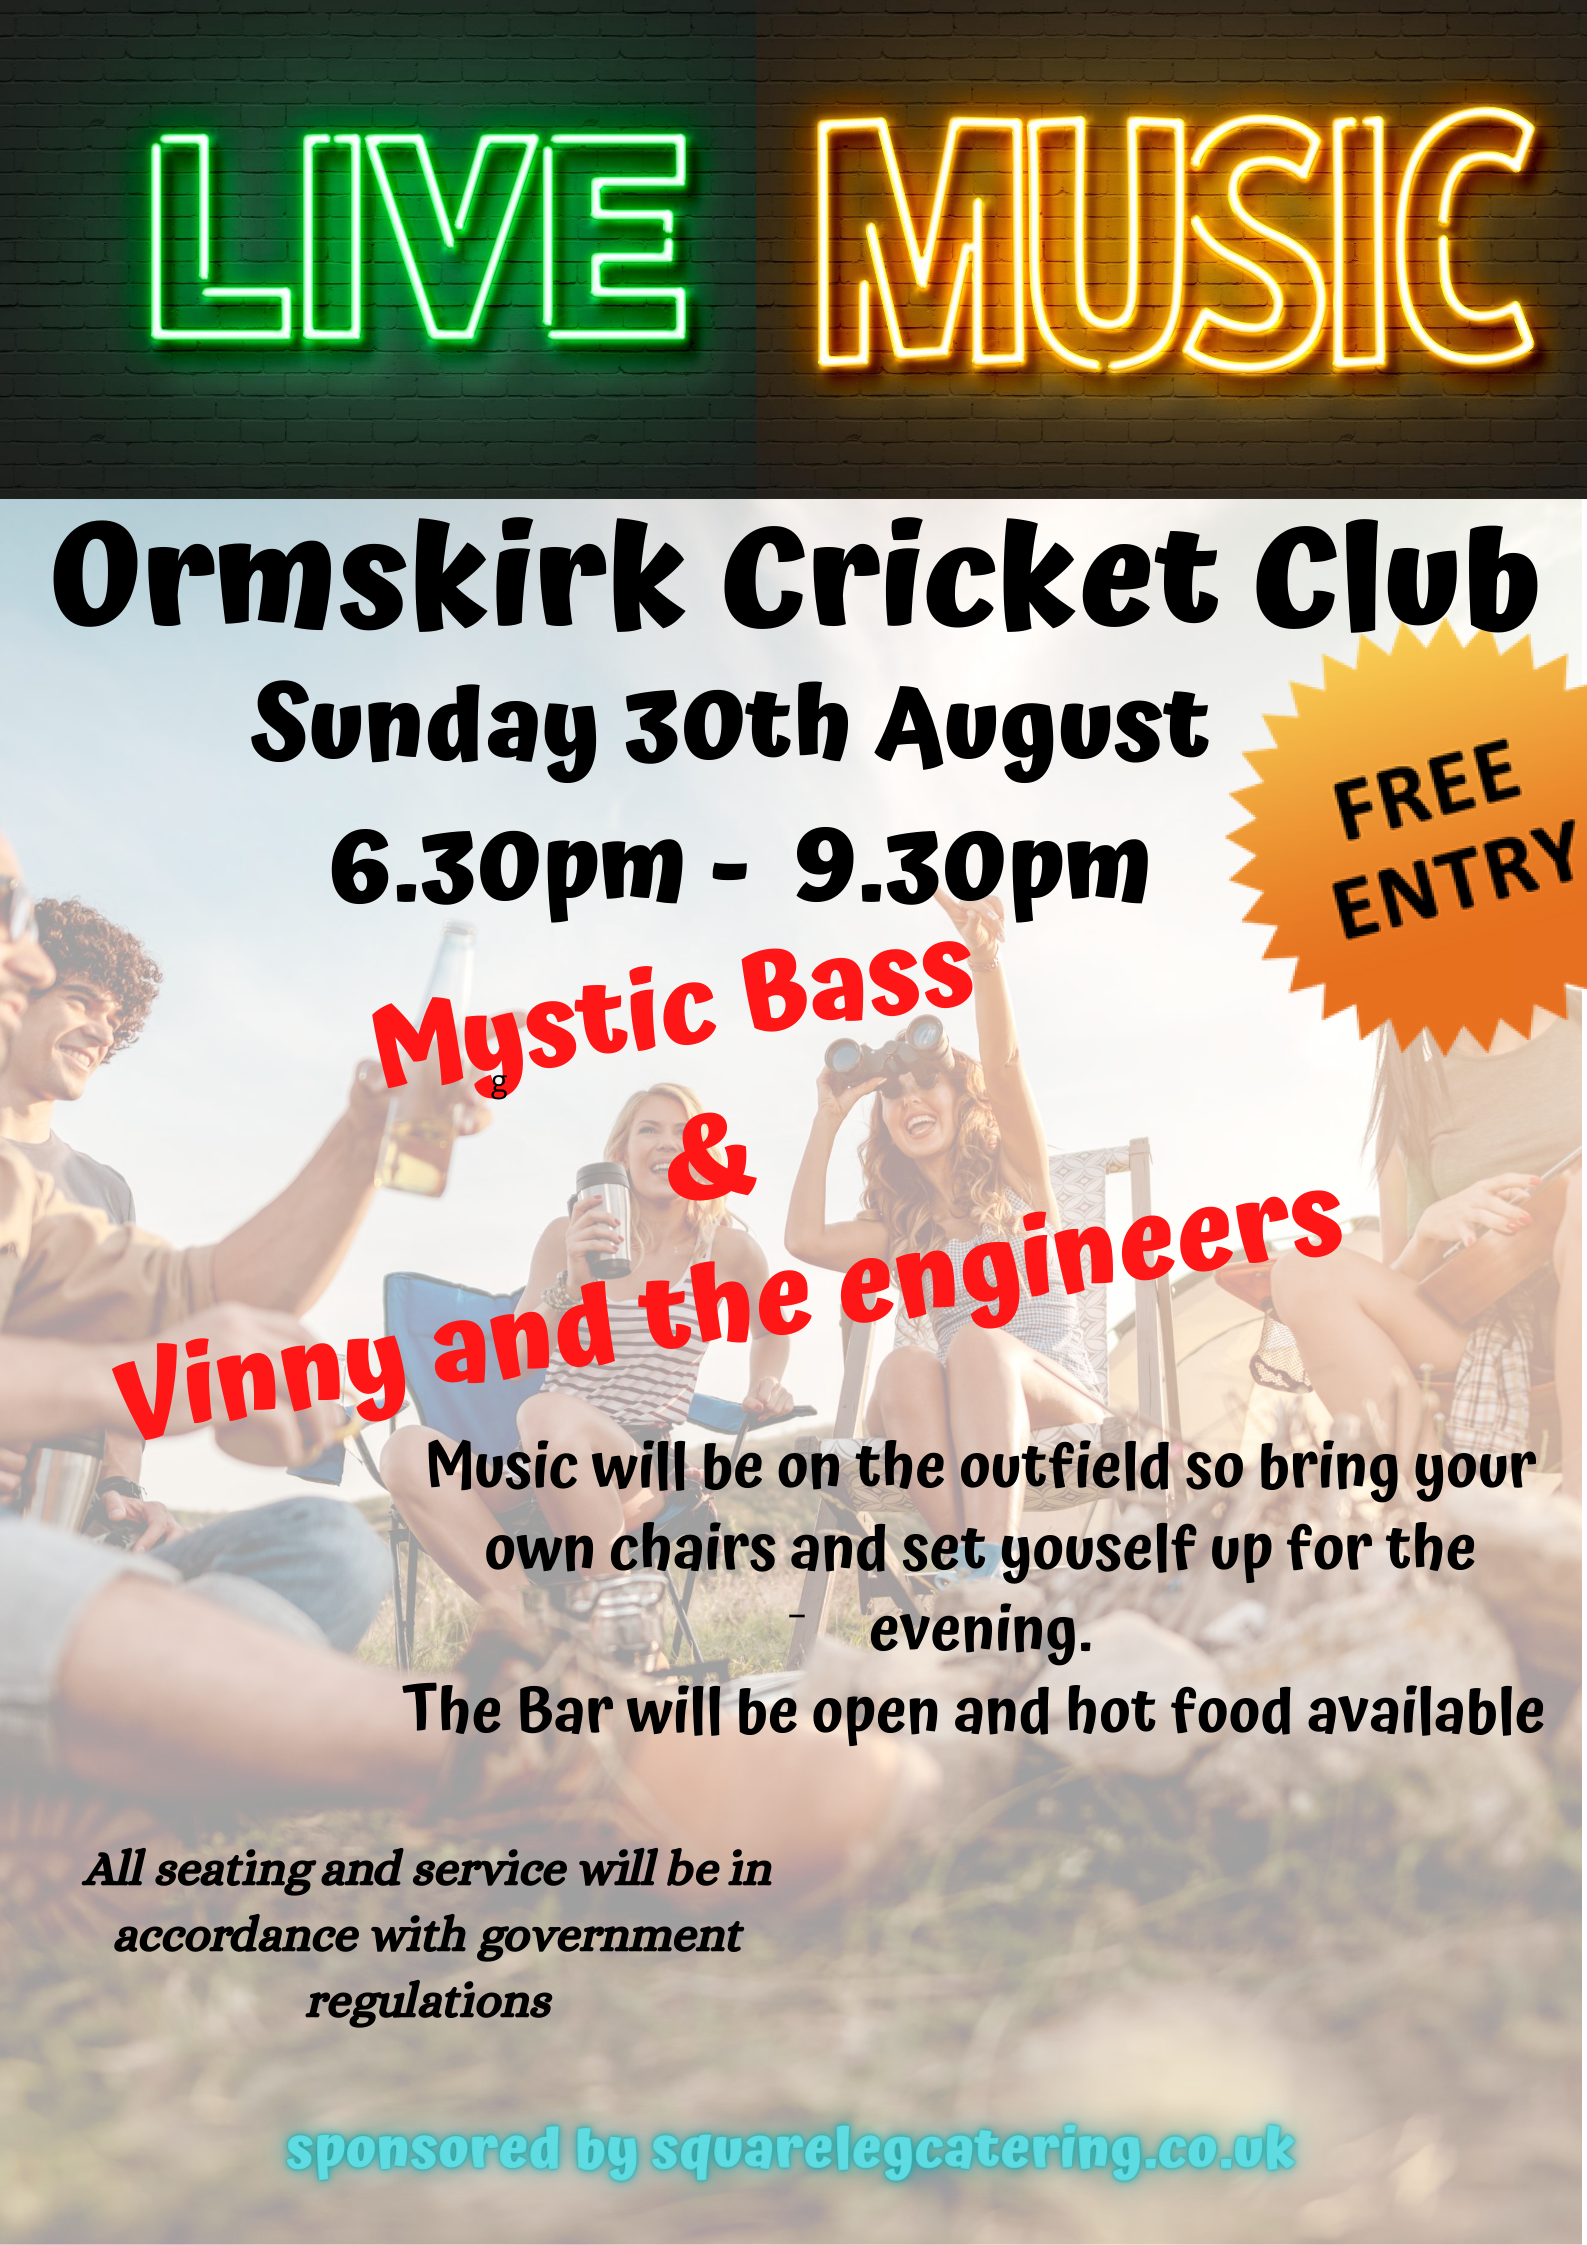 Live Music - Sunday 30th August